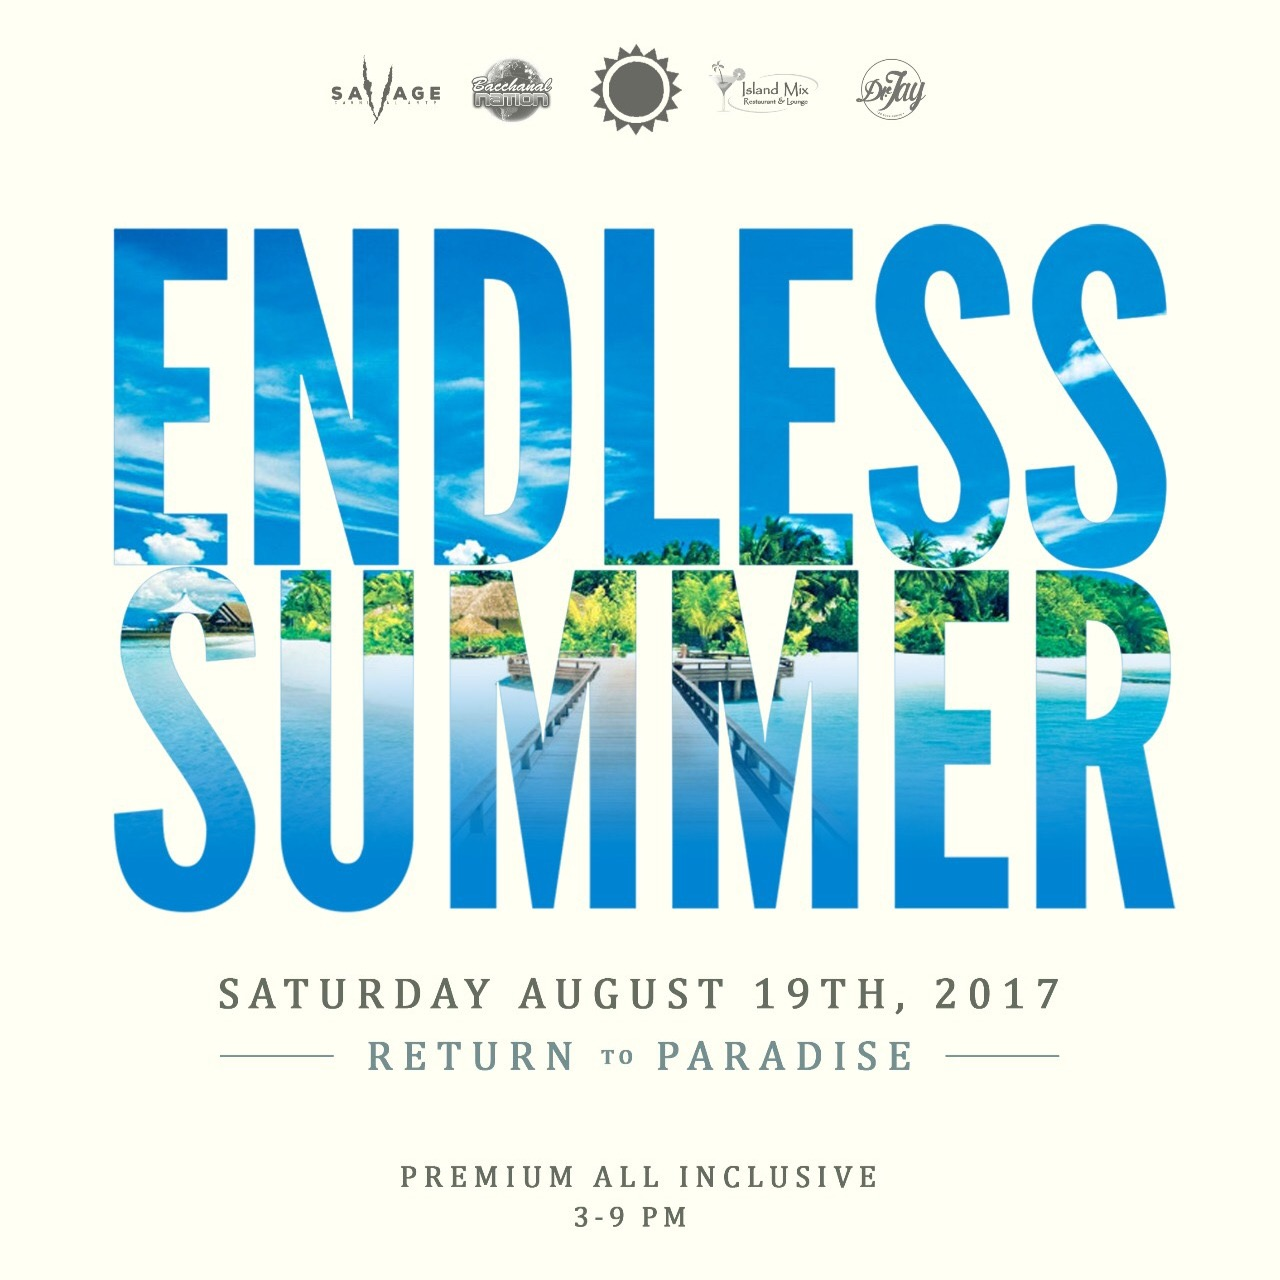 ENDLESS SUMMER - Return To Paradise